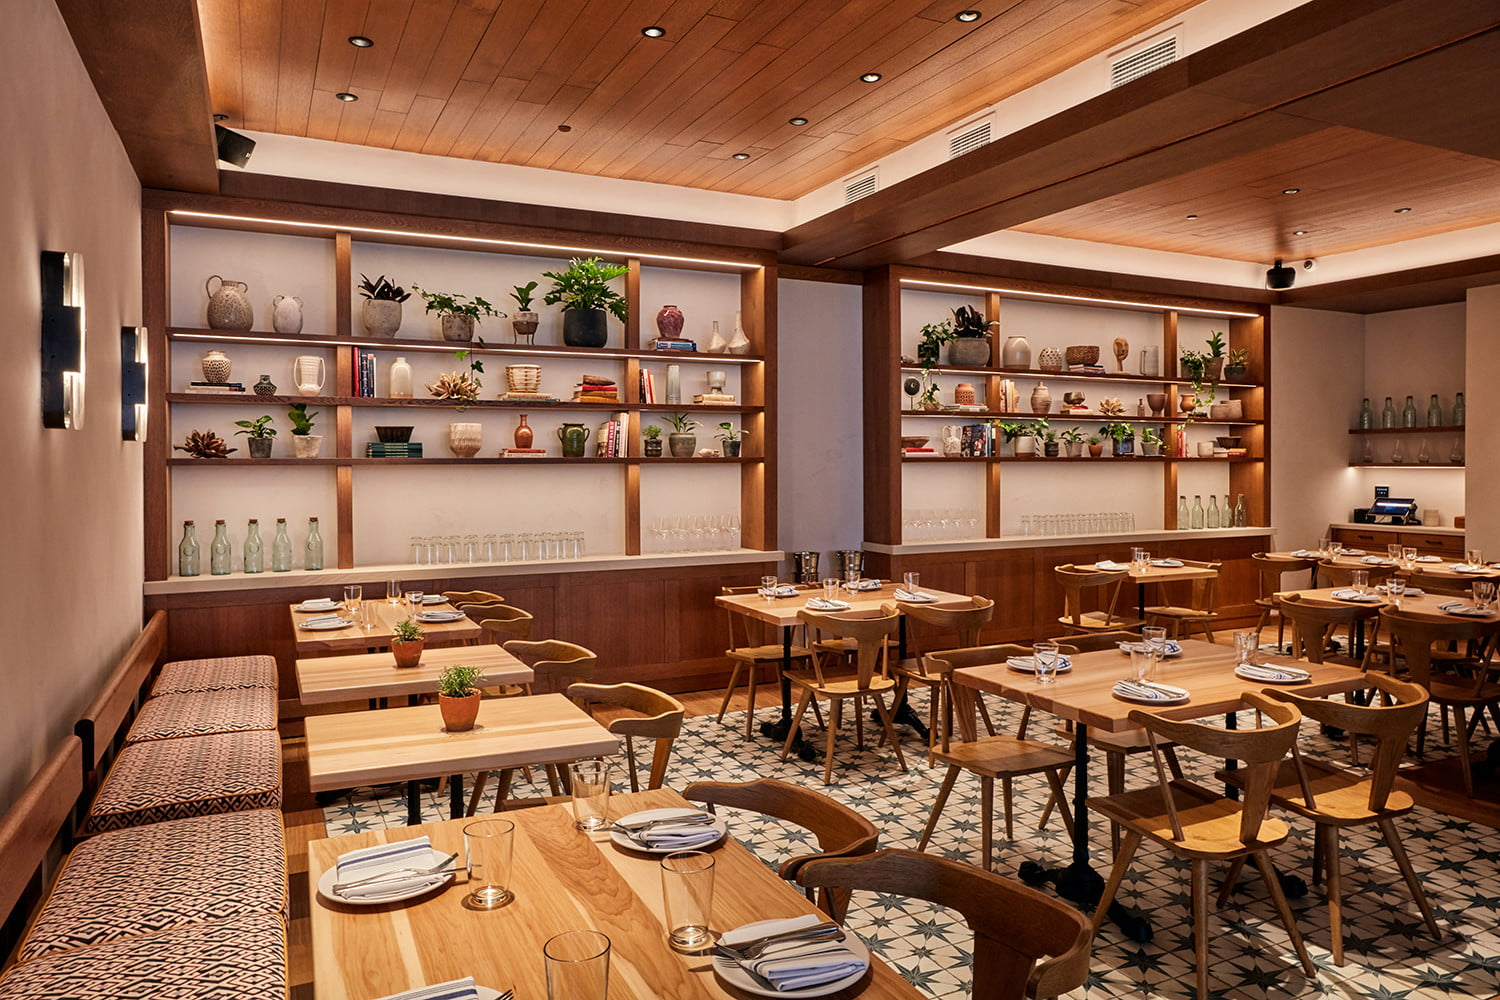 top chef joe flamm rose mary restaurant private dining room